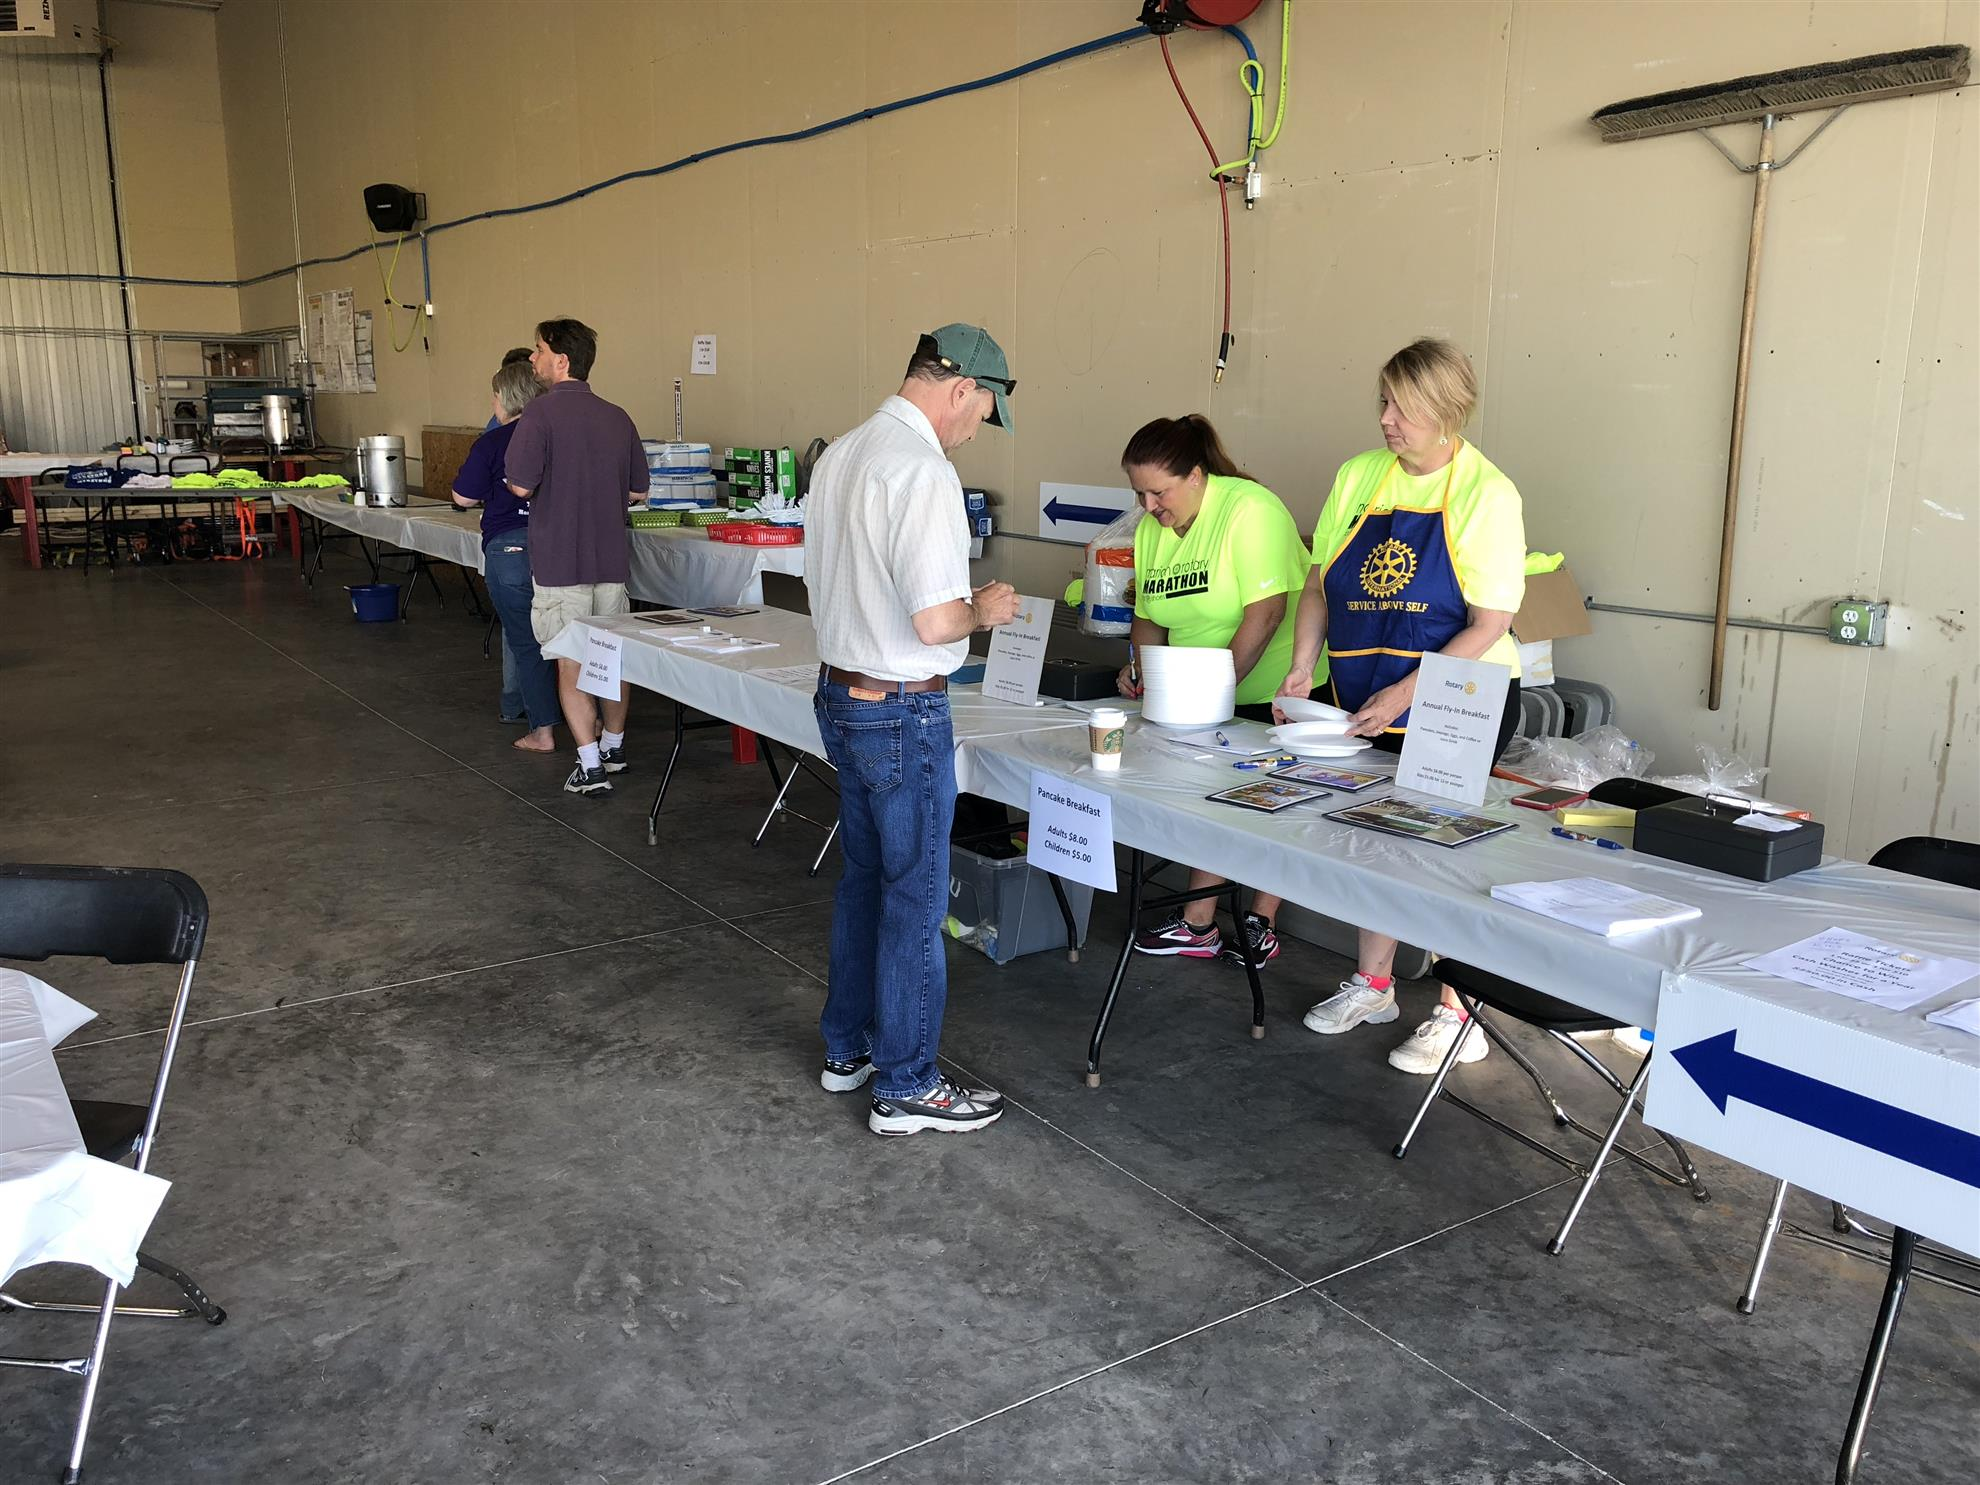 fd171701f5f2 A beautiful day at the Marion Airport brought many aviation enthusiasts out  to enjoy airplanes and pancakes. A steady manageable flow of customers were  ...